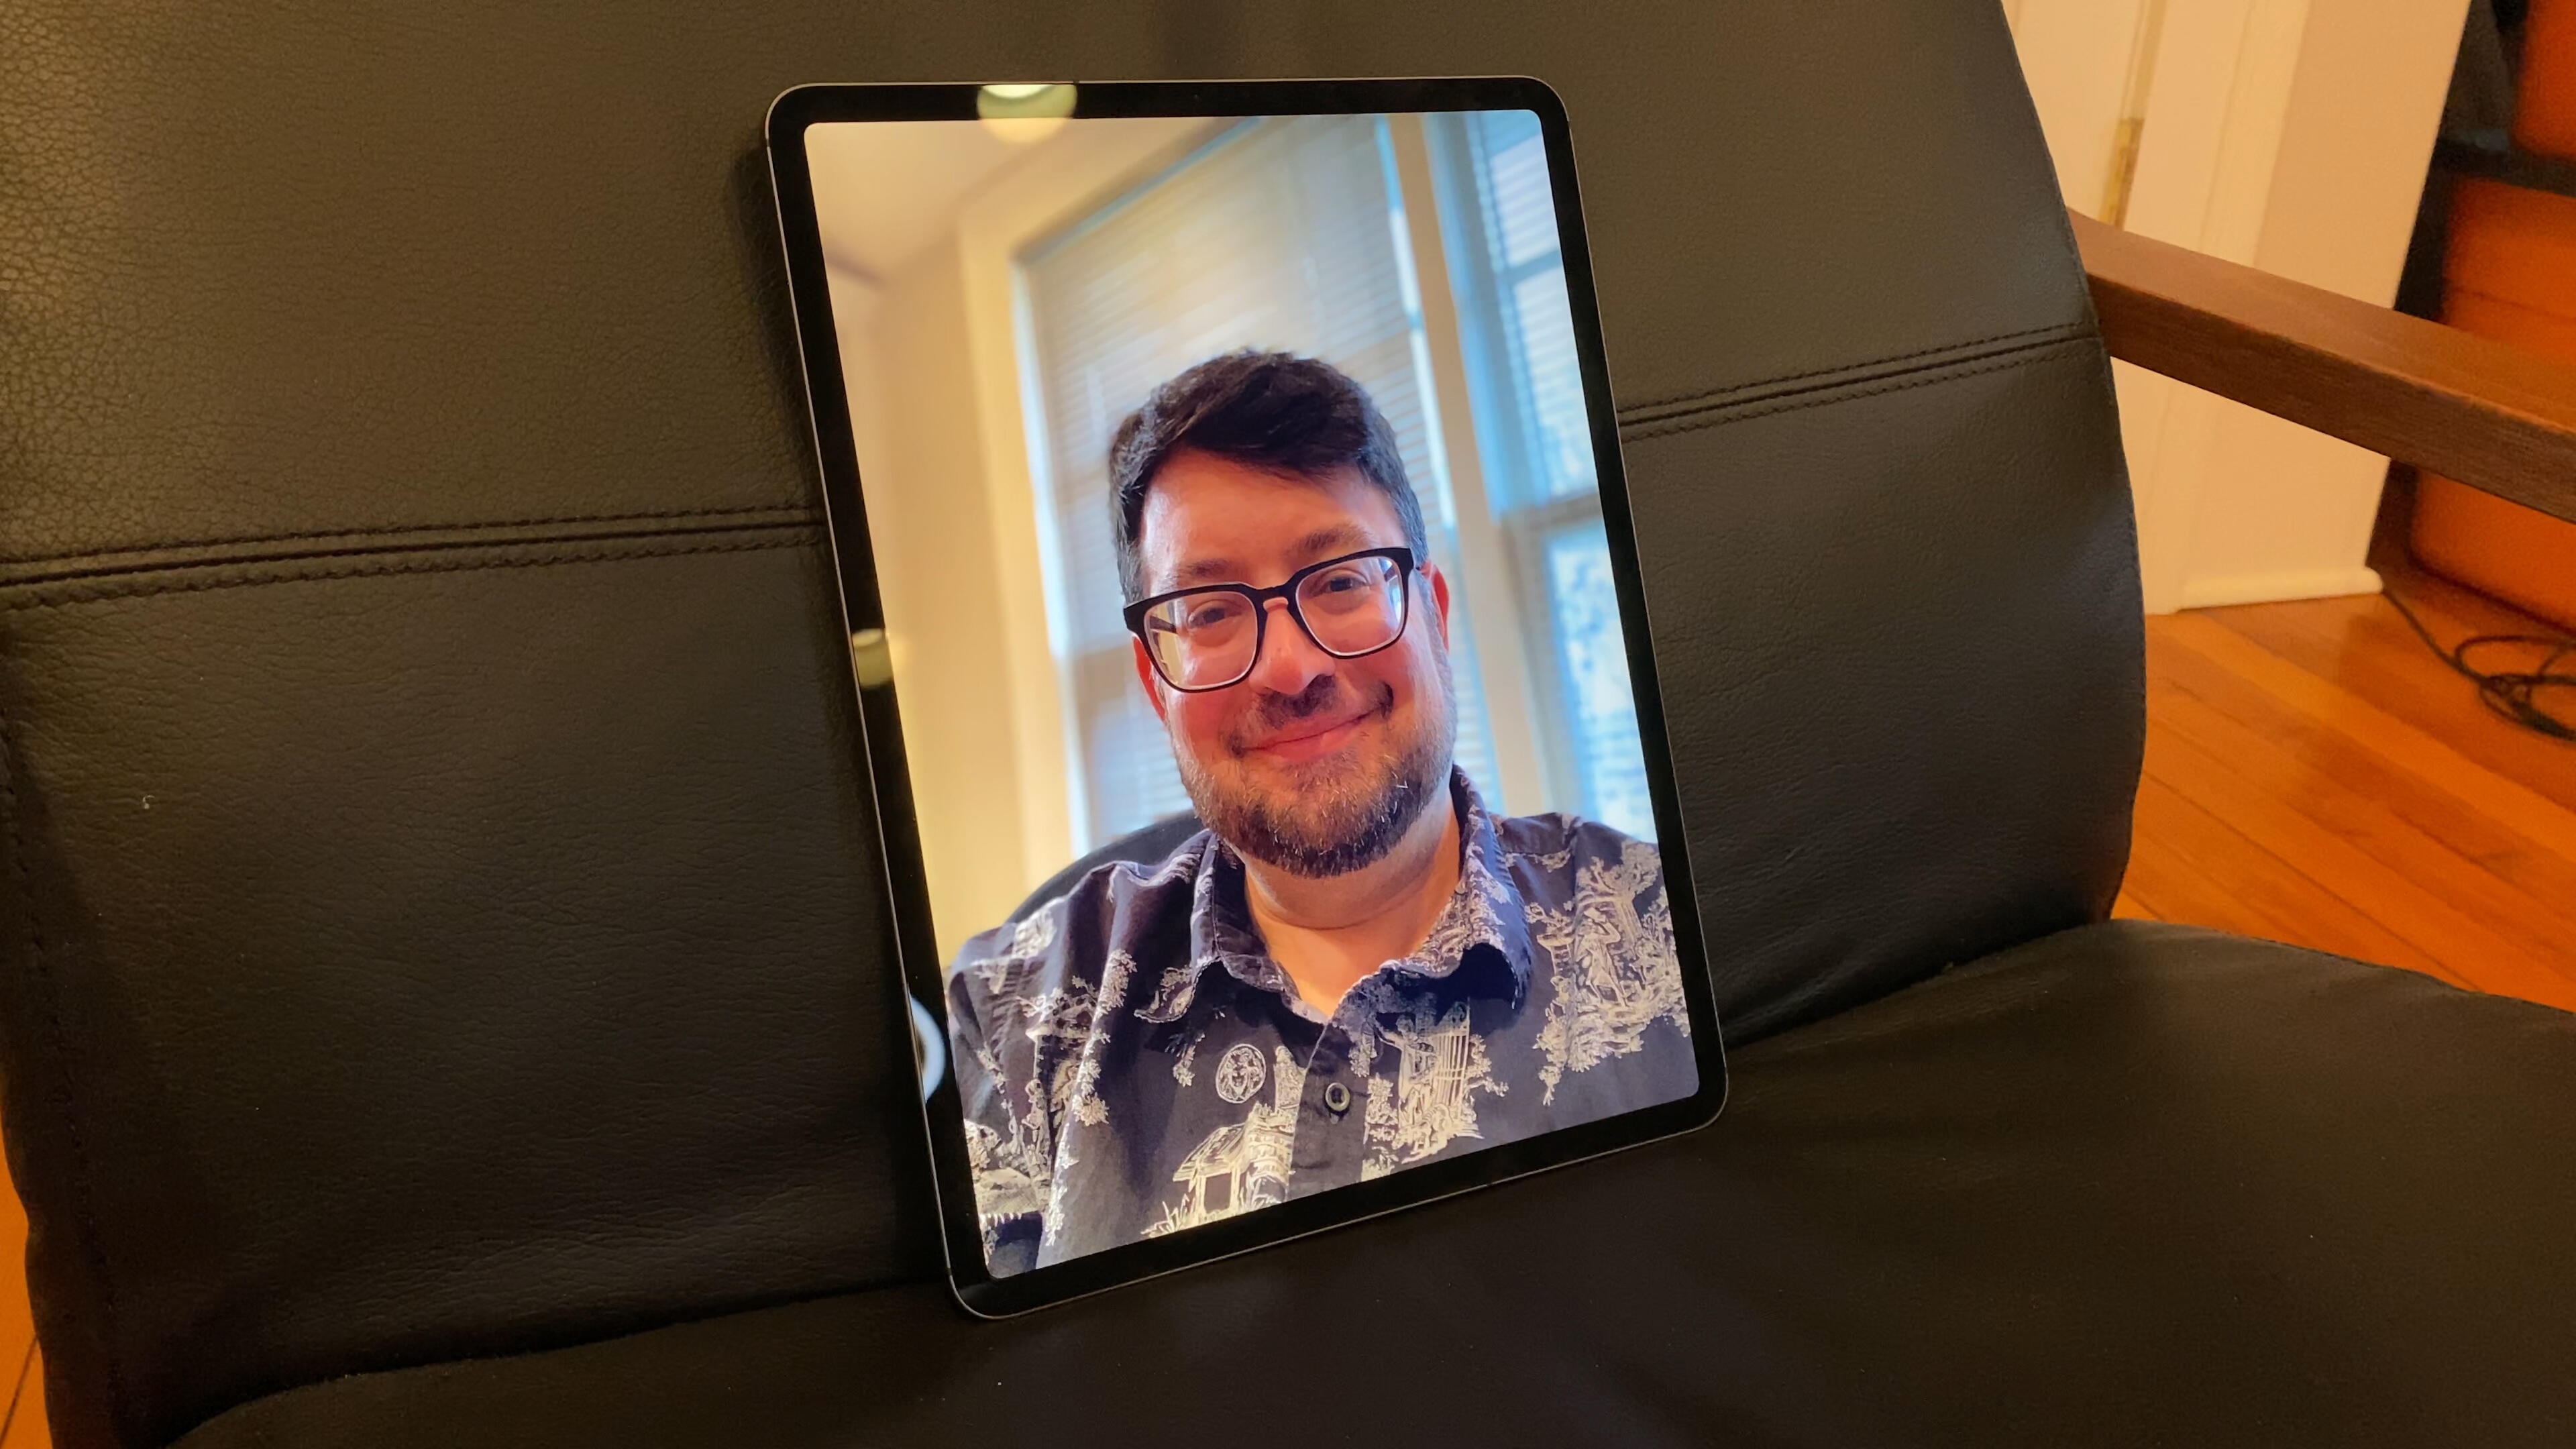 Video: My first week at home using the new iPad Pro